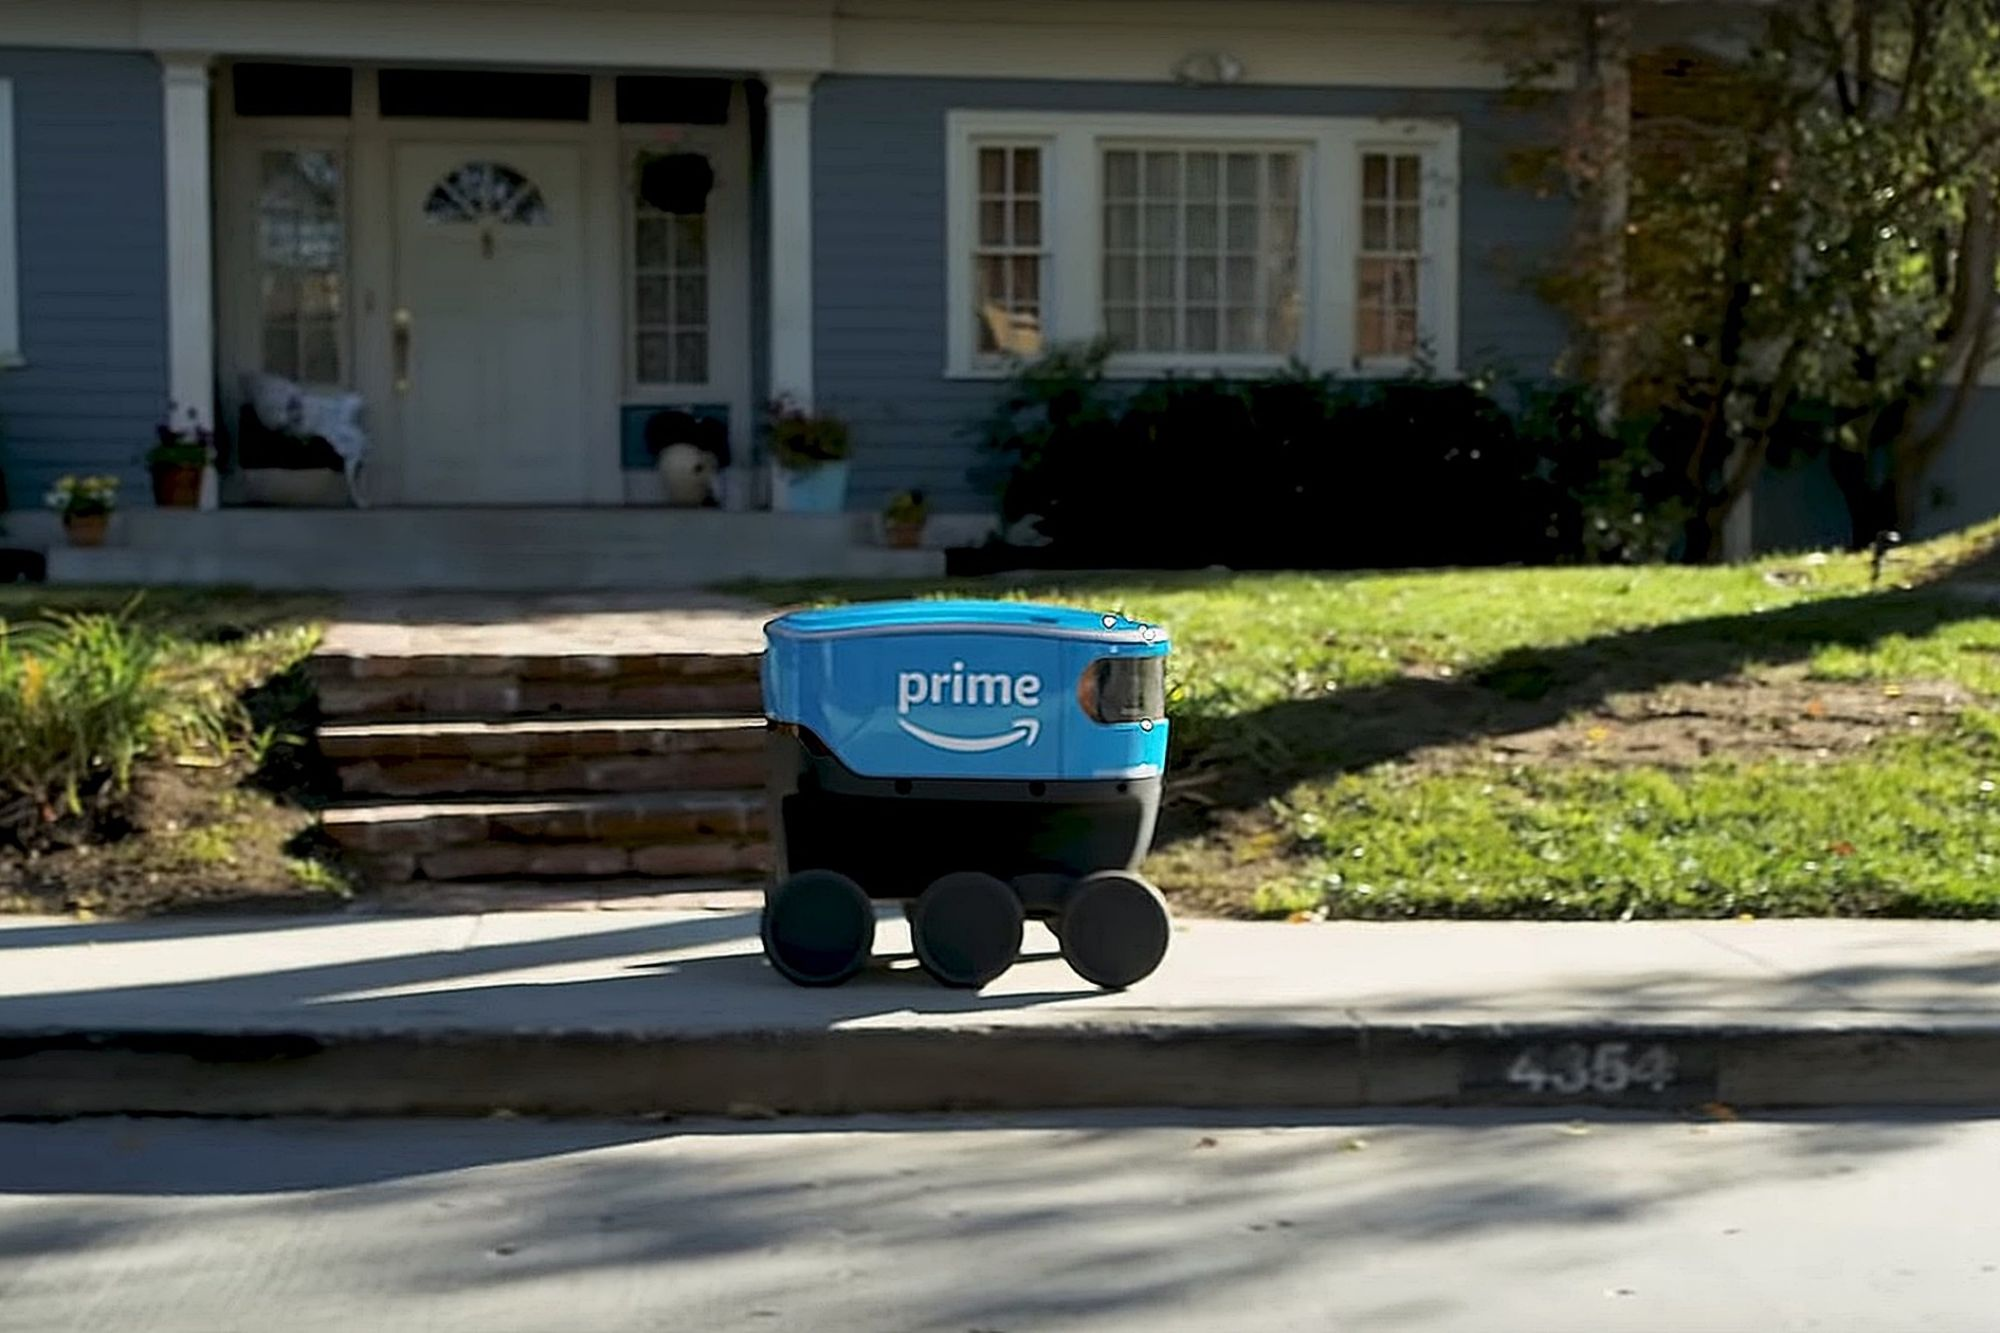 Amazon Stock Rises as the 'Scout' Delivery Robot Is Unveiled